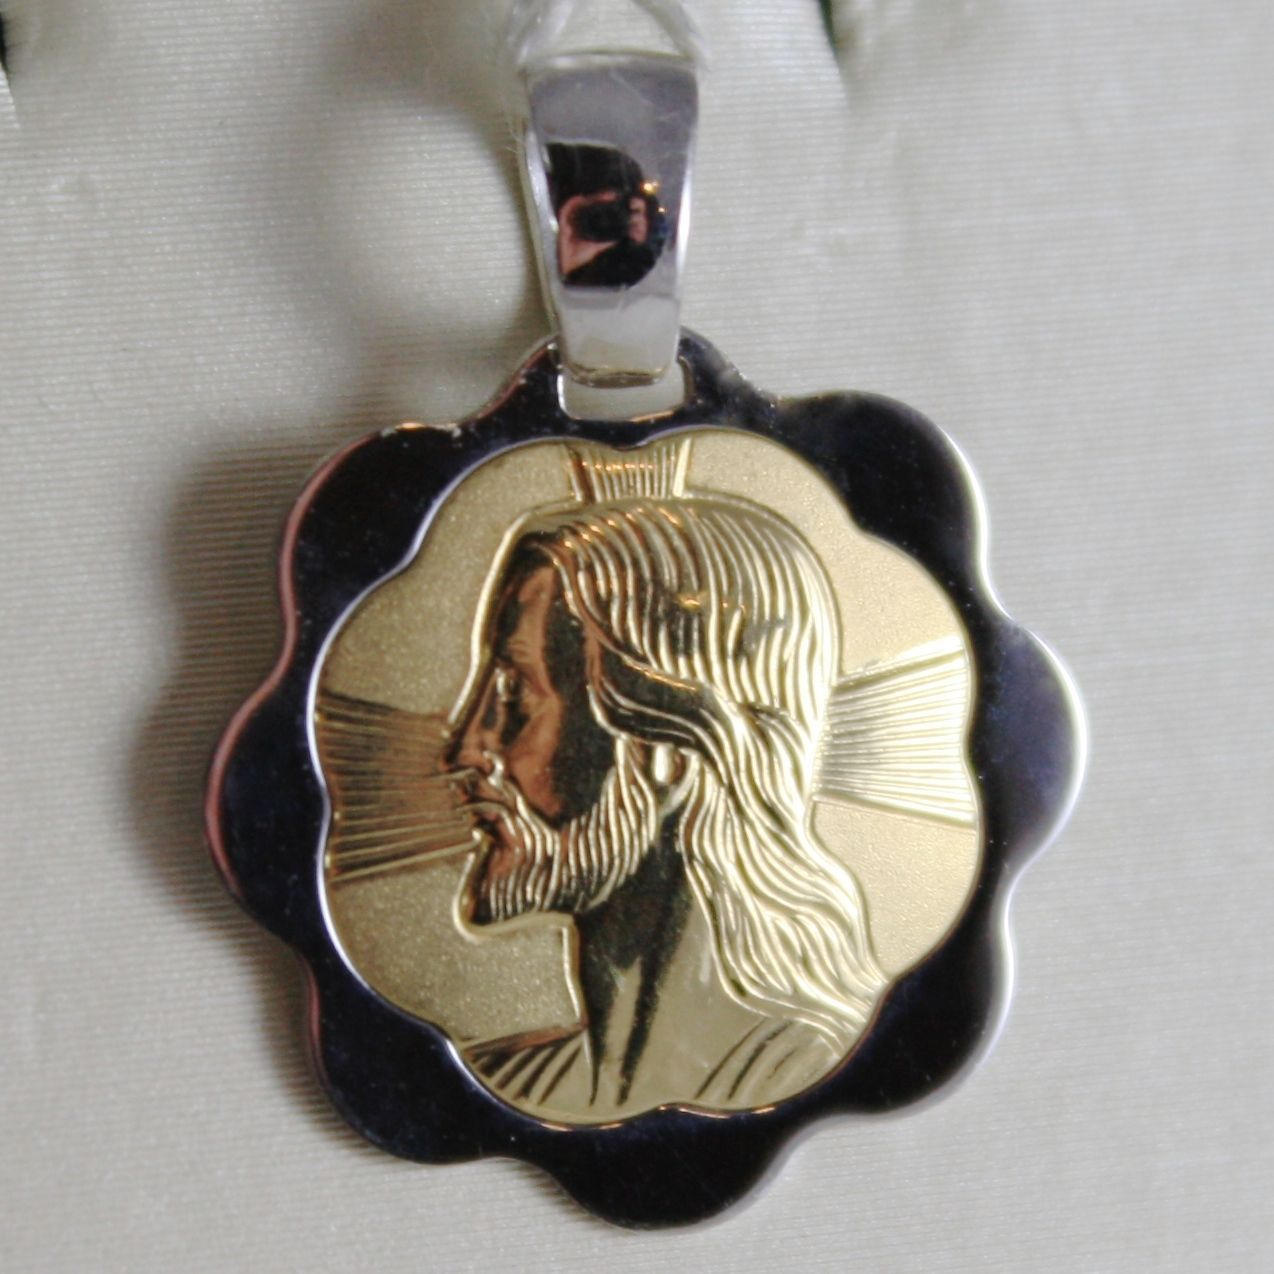 18K YELLOW WHITE GOLD FLOWER MEDAL JESUS CHRIST FACE ENGRAVABLE MADE IN ITALY